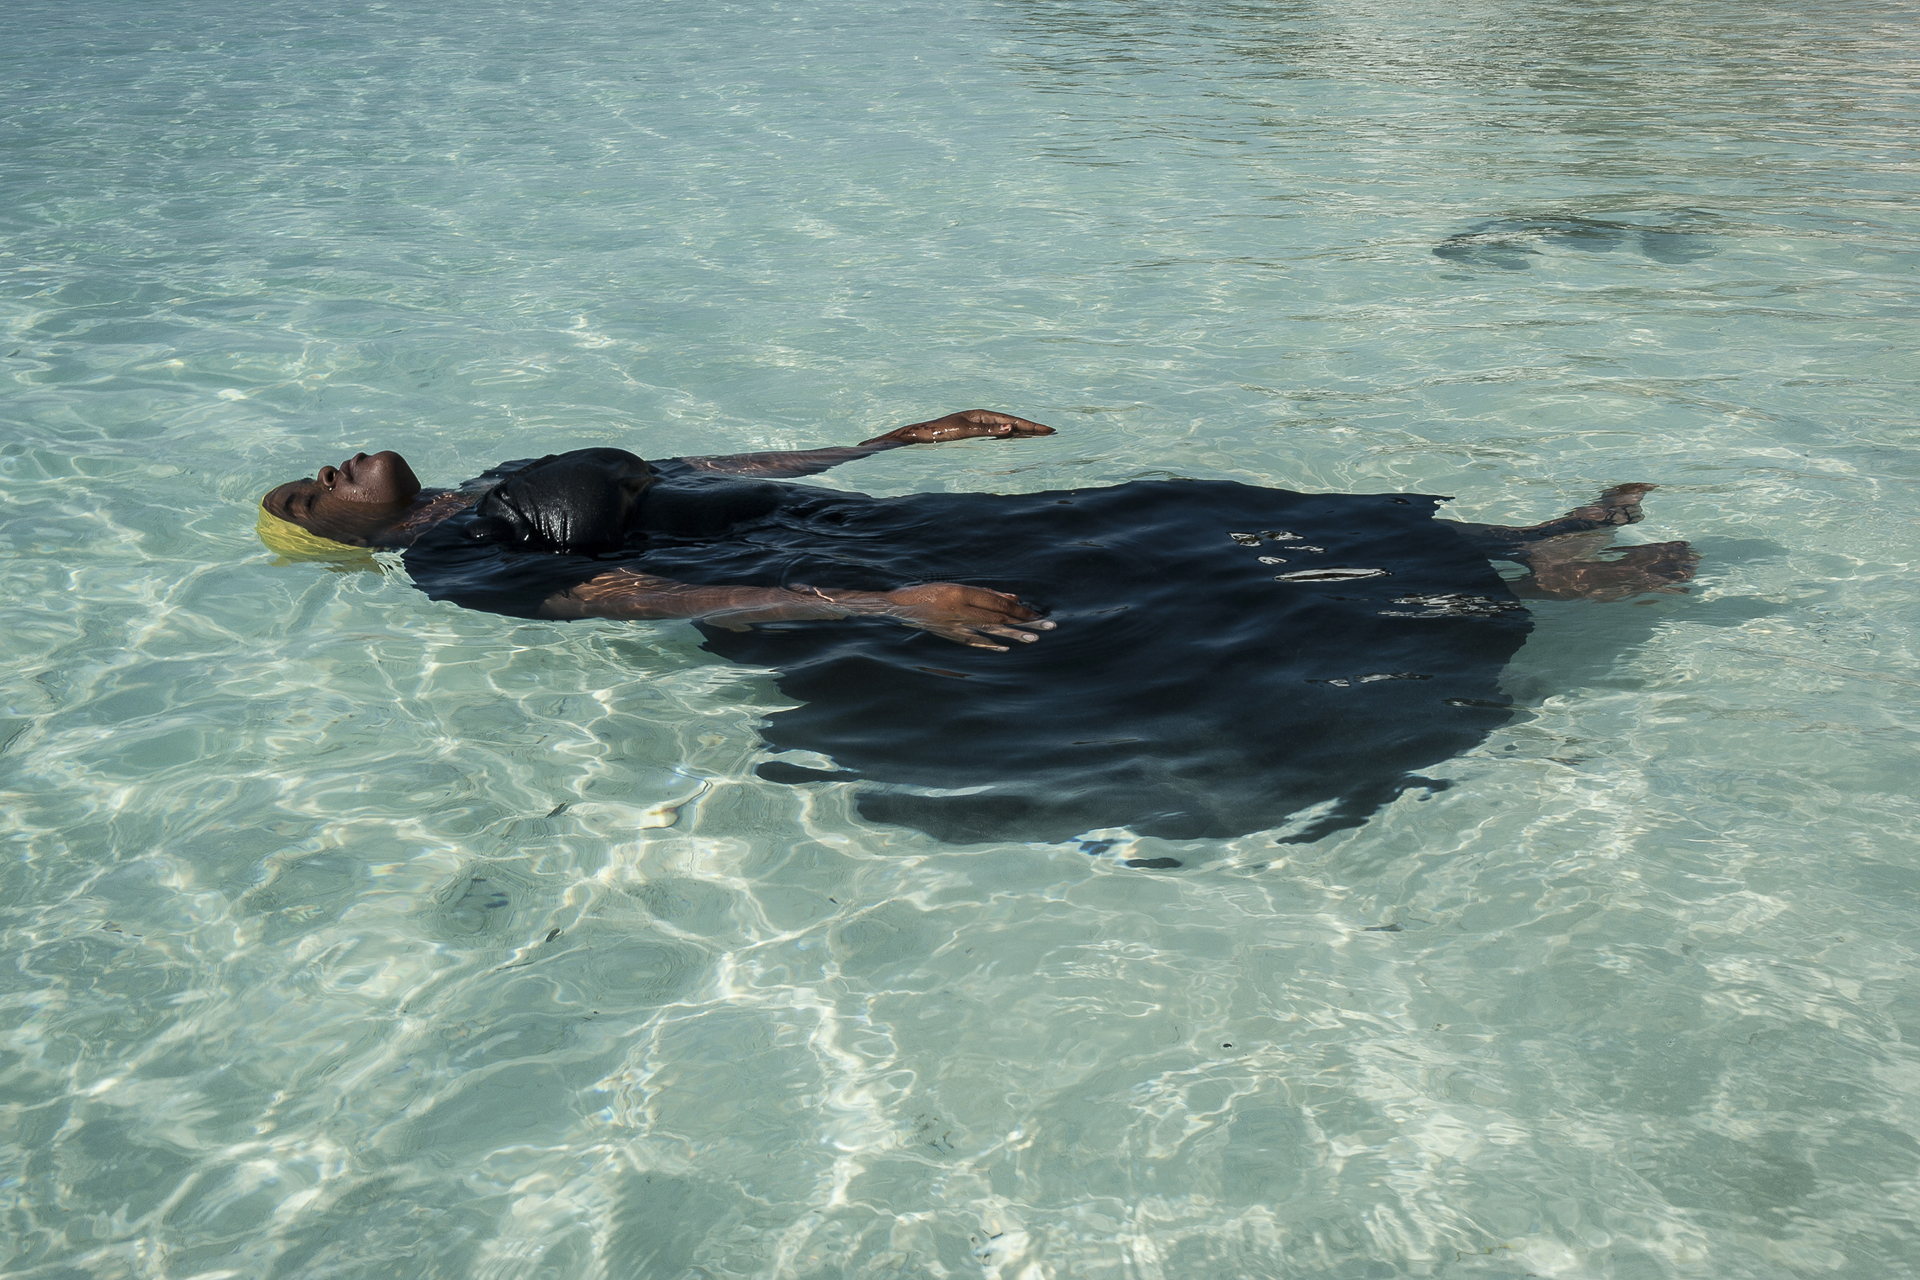 Anna Boyiazis. From  Finding Freedom in the Water,  2016